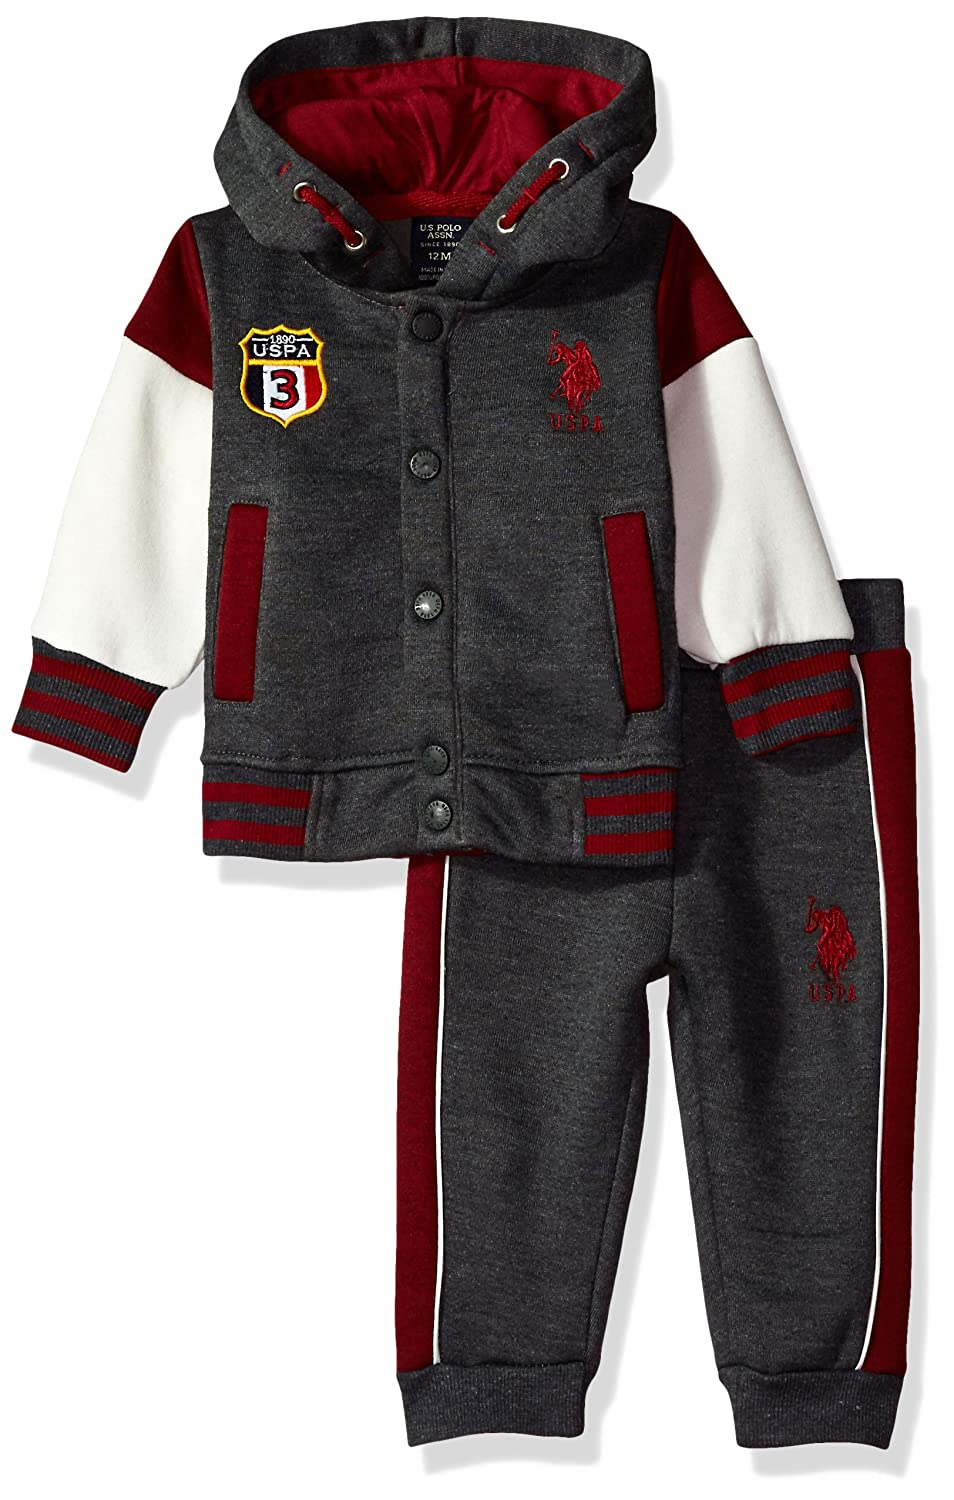 U.S Polo Assn Baby Boys 2 Piece Fleece Jog Set